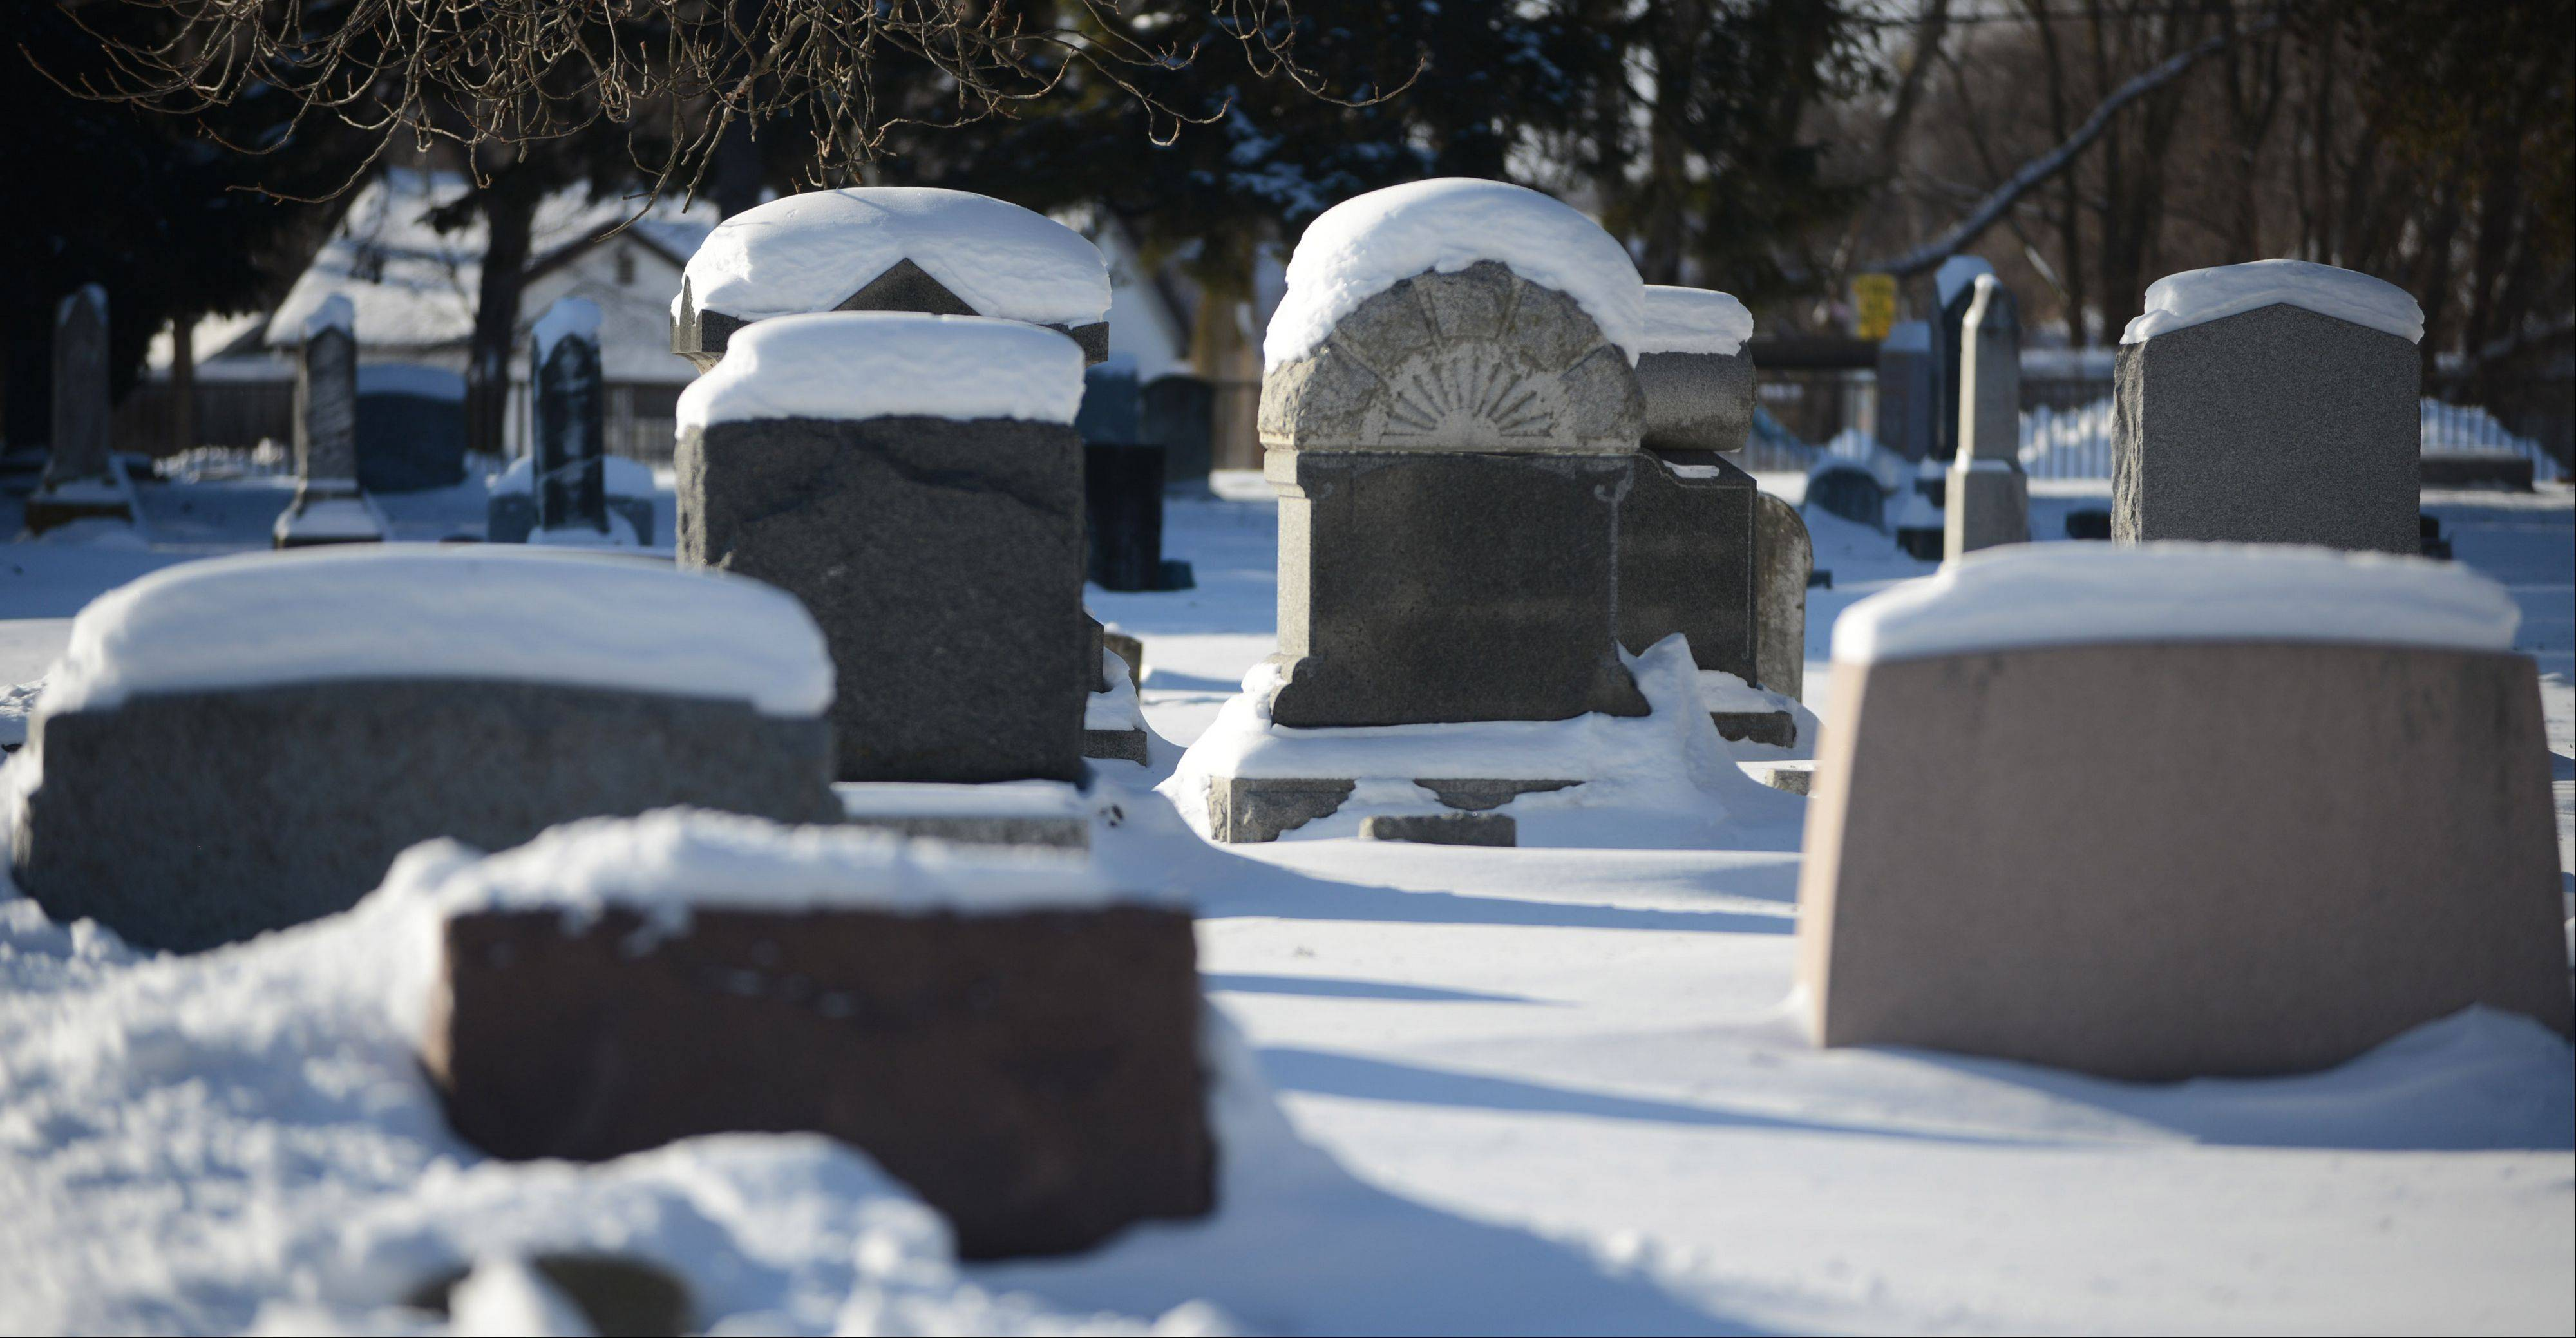 With this snow and bitter cold, local cemeteries need to do a little extra to make sure burials still take place on time.